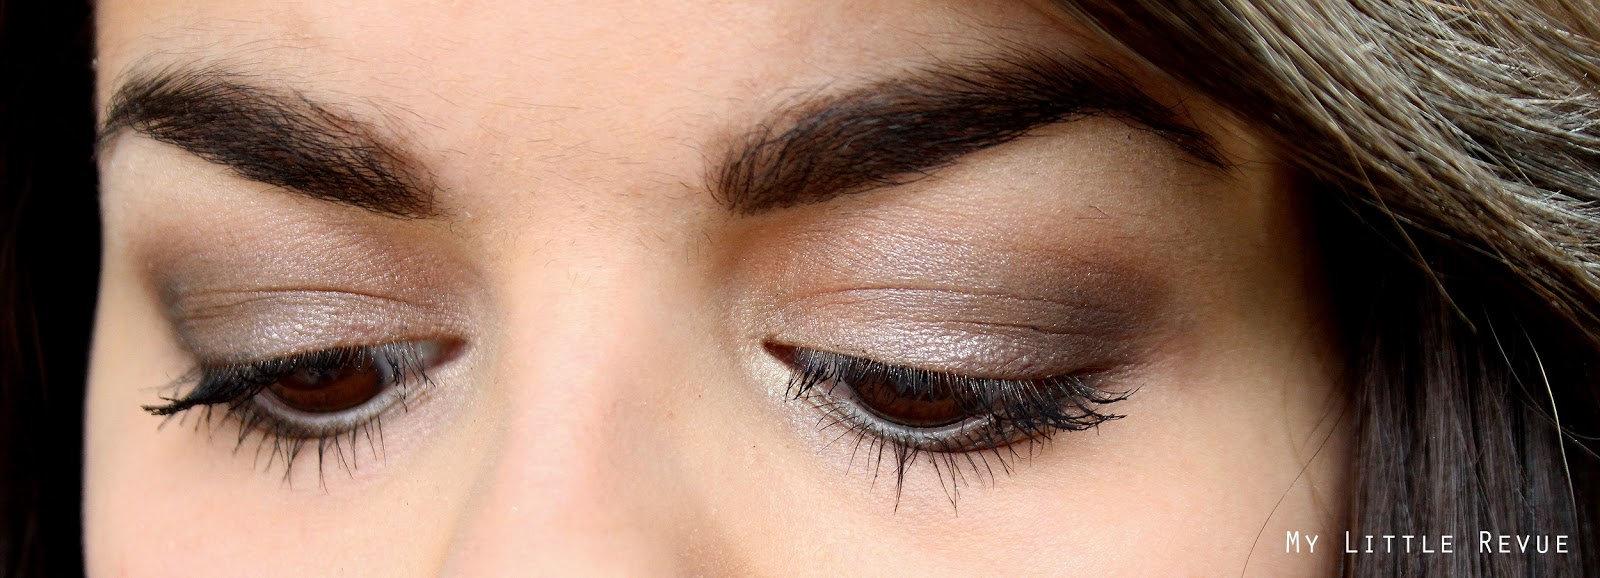 maquillage des yeux taupe